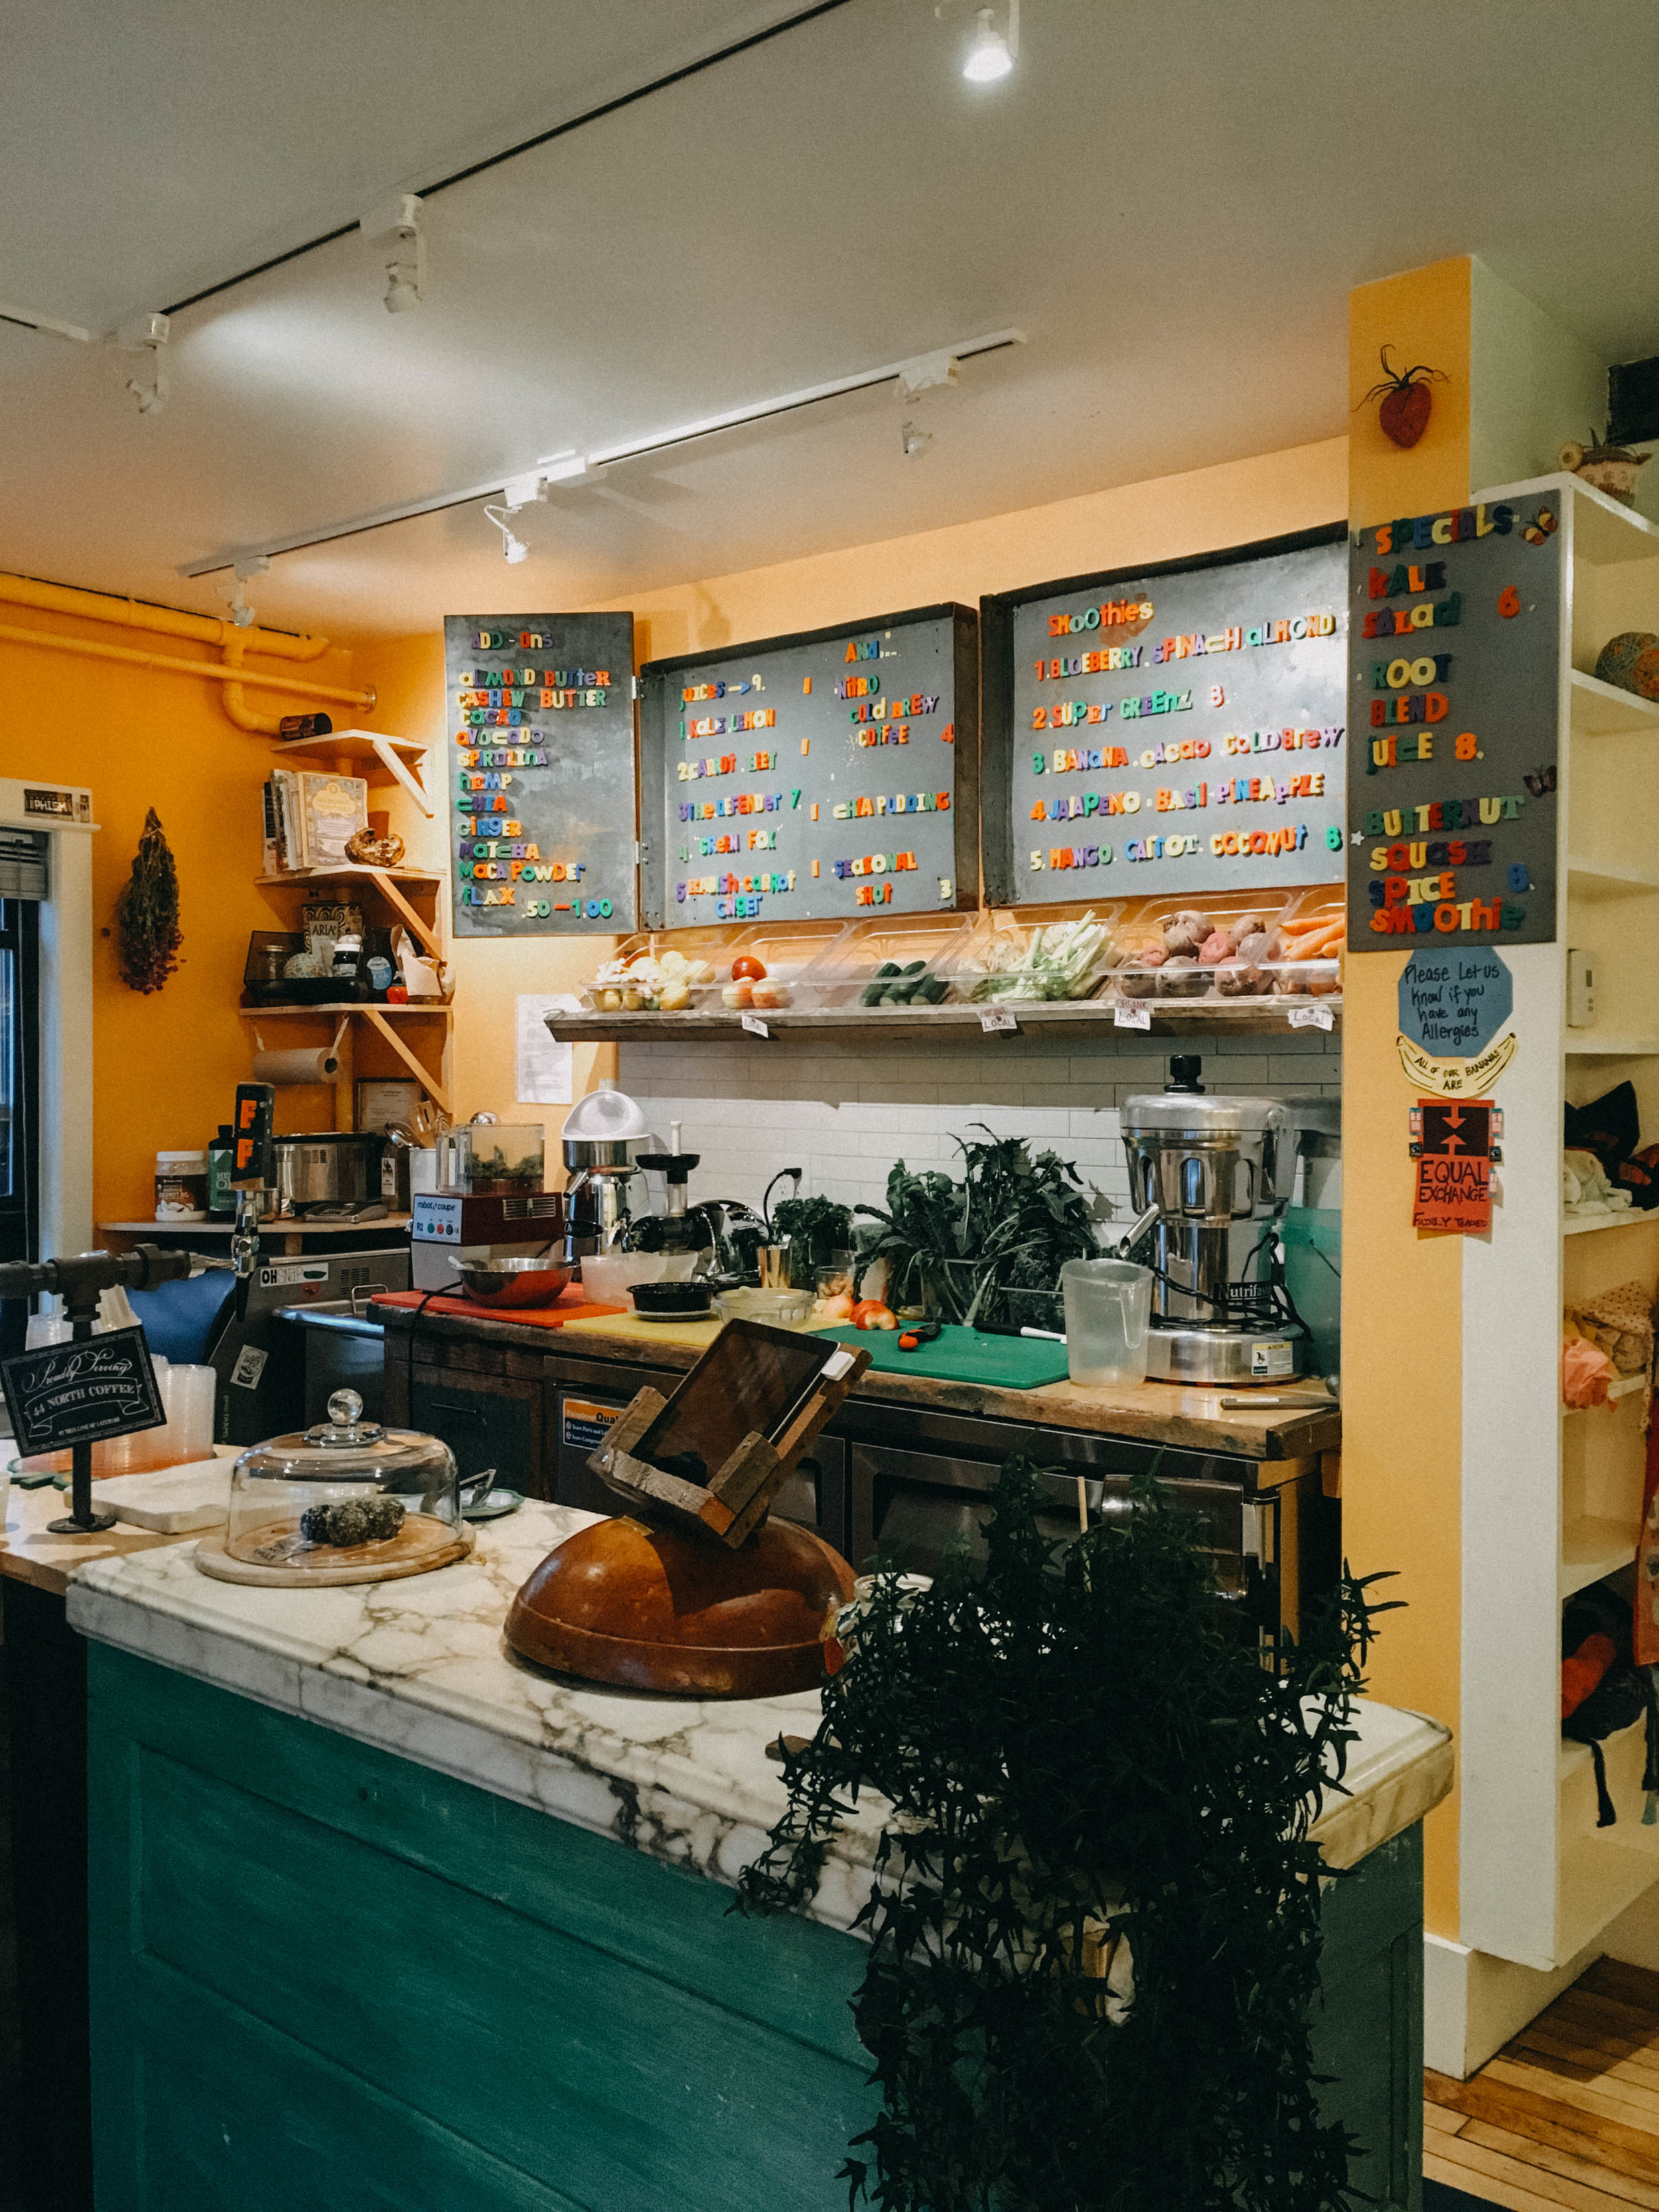 The Flying Fox Juice Bar was probably one of our most favorite places we went, seriously we went almost 1 or 2 times a day while we were in Portland!